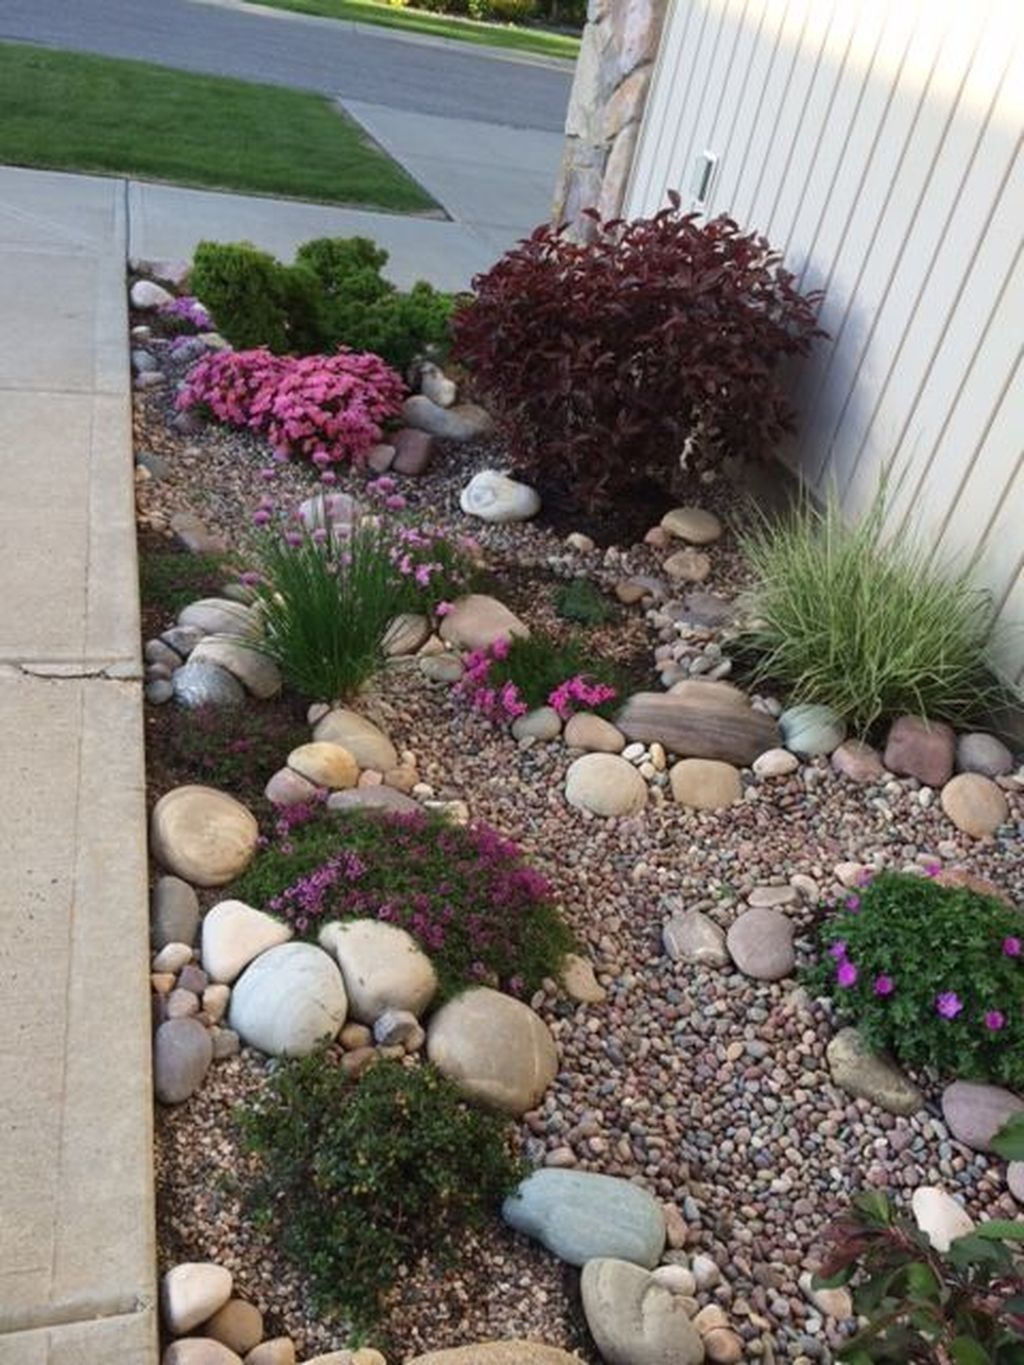 Great Pics Rock Garden Plants Suggestions In Simple Terms A Rock Garden Sometimes Called A Rockery I In 2021 Rock Garden Design Budget Garden Landscaping With Rocks